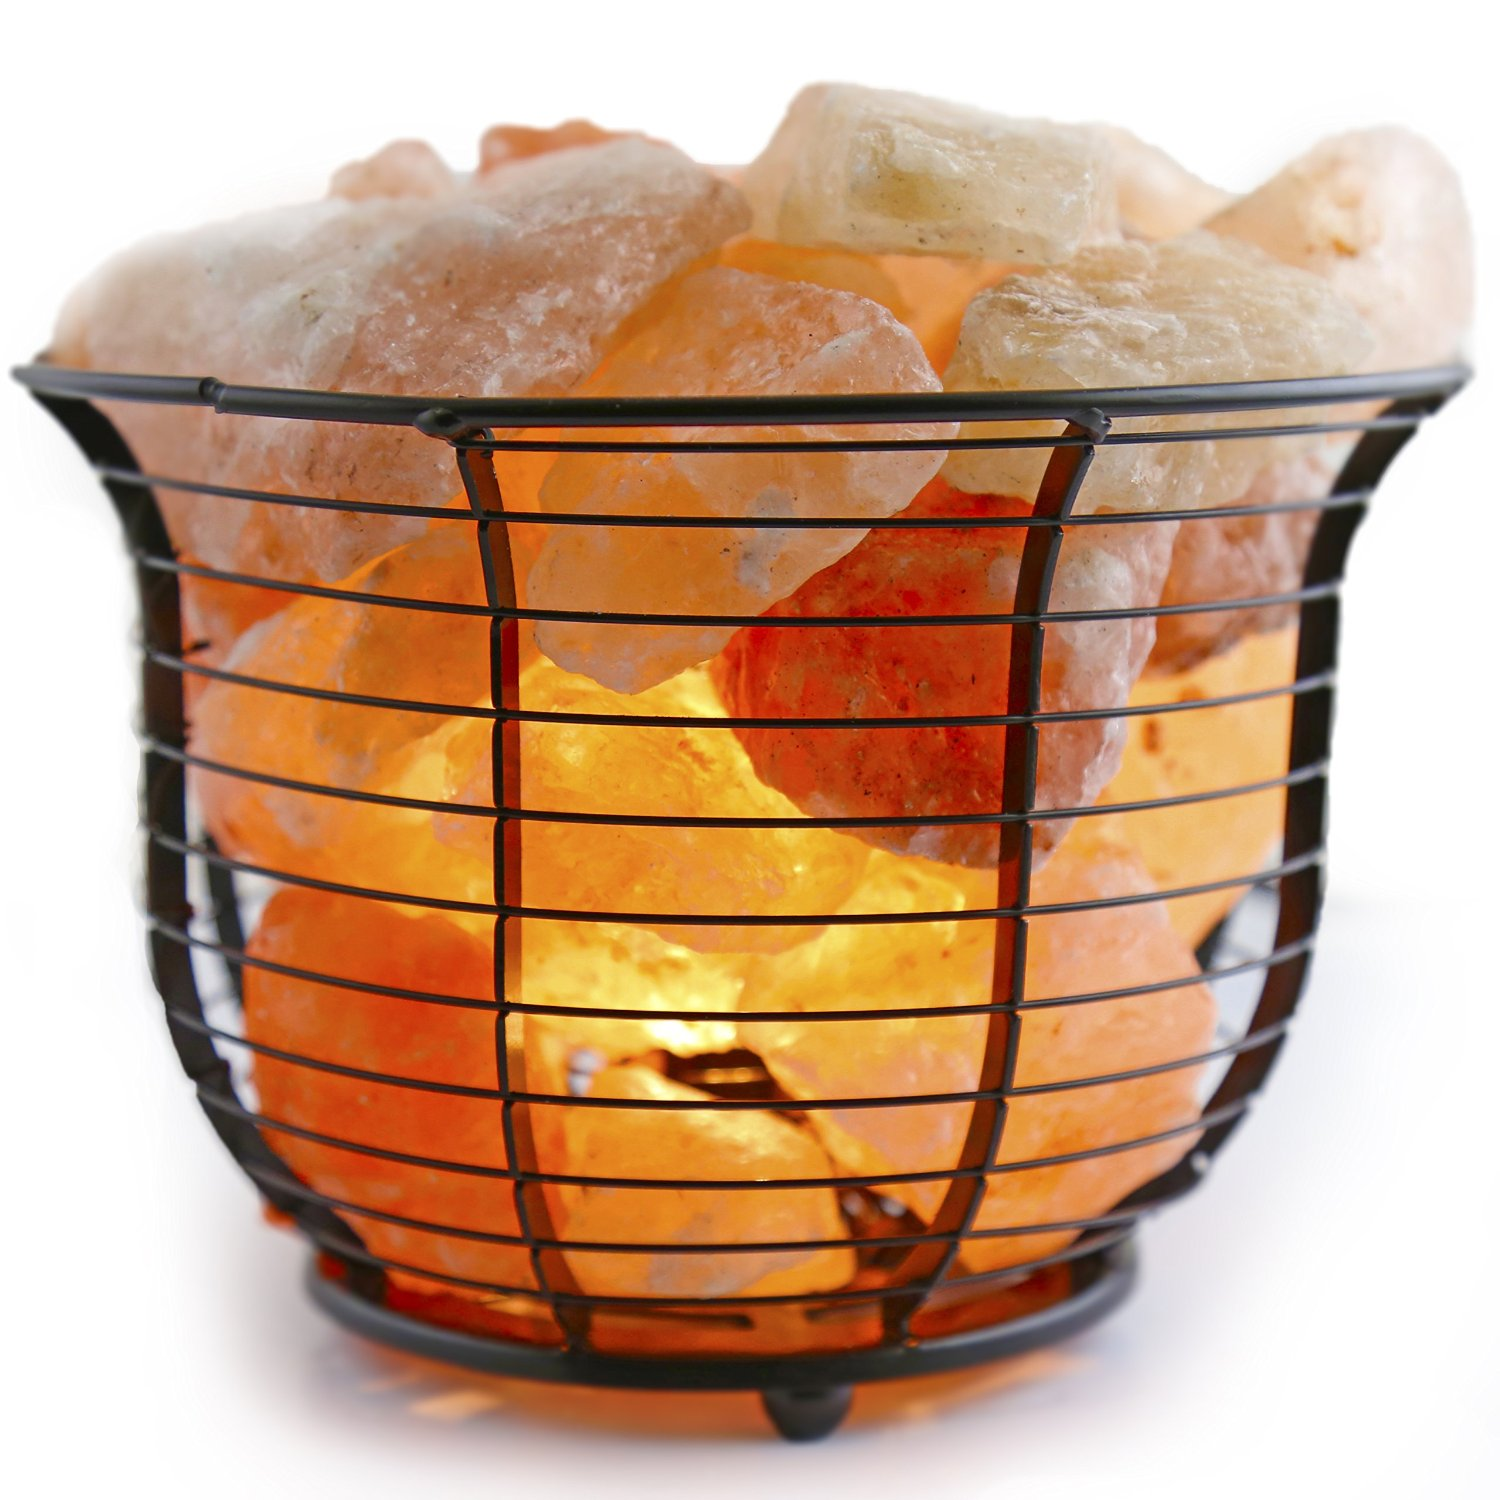 12 Reasons To Keep A Himalayan Salt Lamp In Every Room Of The House -  Jerusalem Post 5ce0a37b56e2